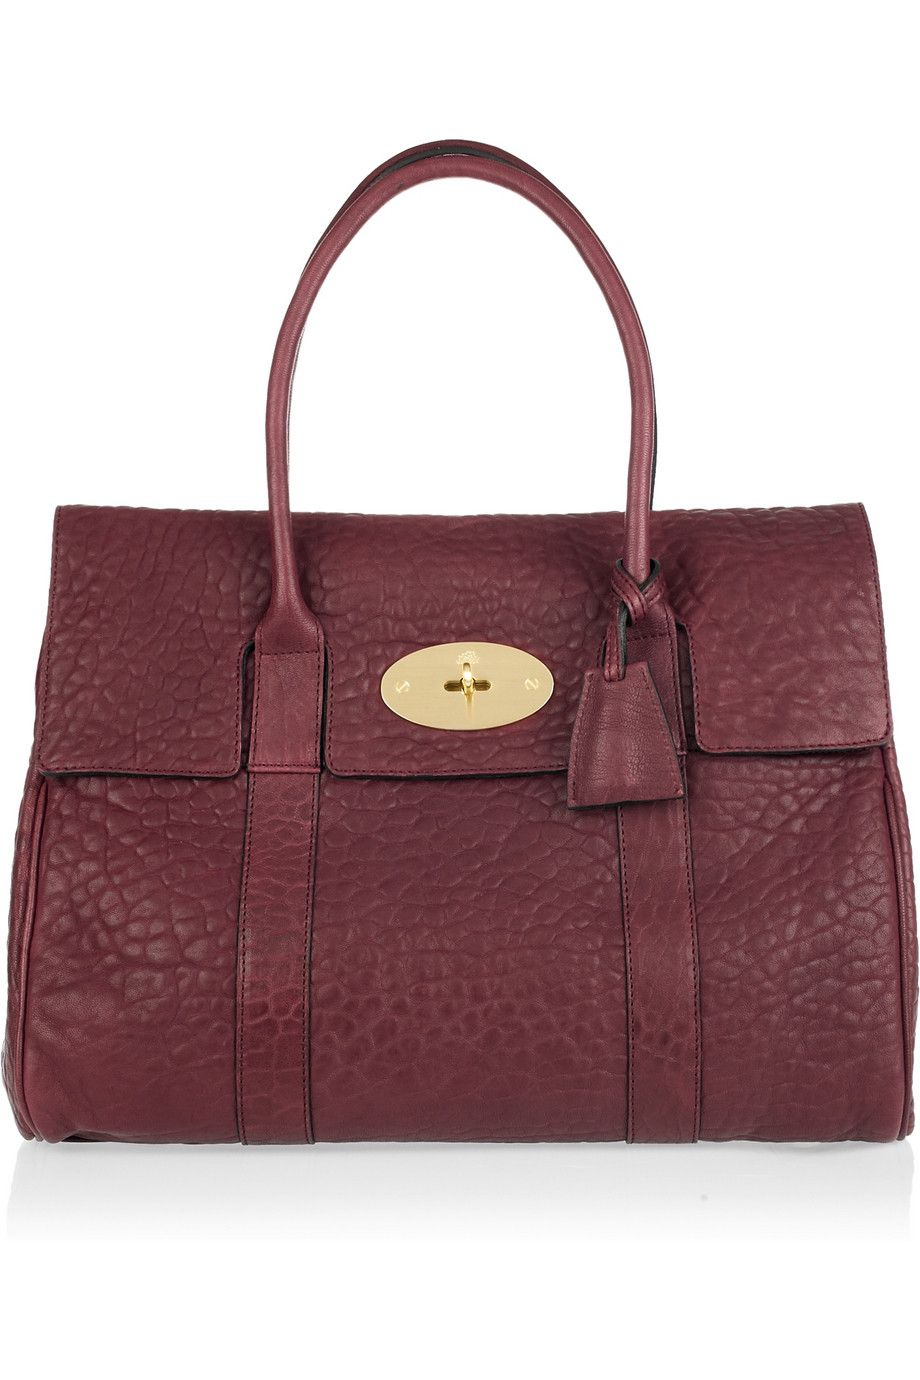 mulberry bayswater bag... I don t know how much it is, but I want it so!!! 483bc84ad7